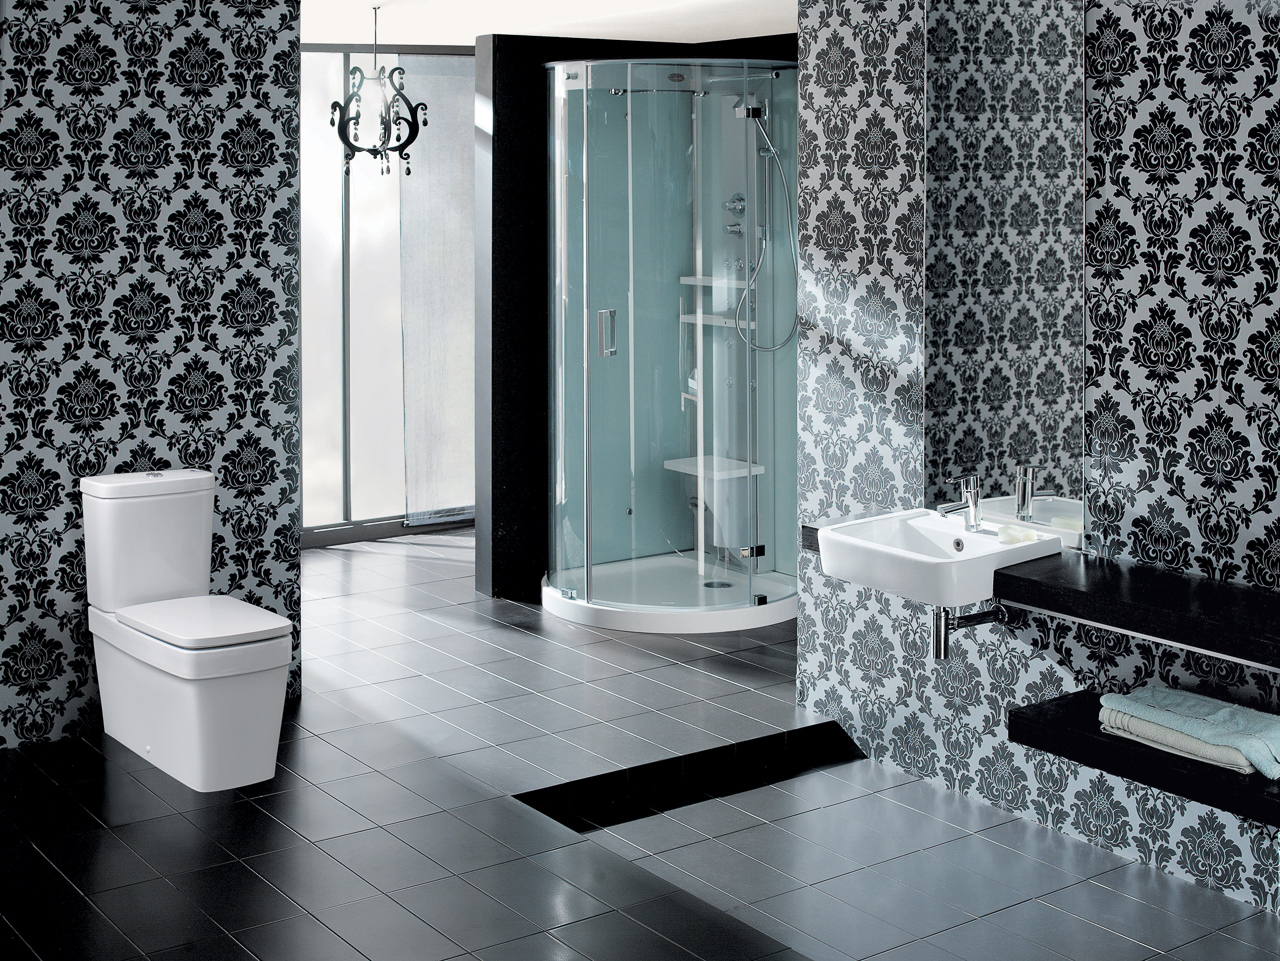 Silverdale Bathrooms: Henley Main